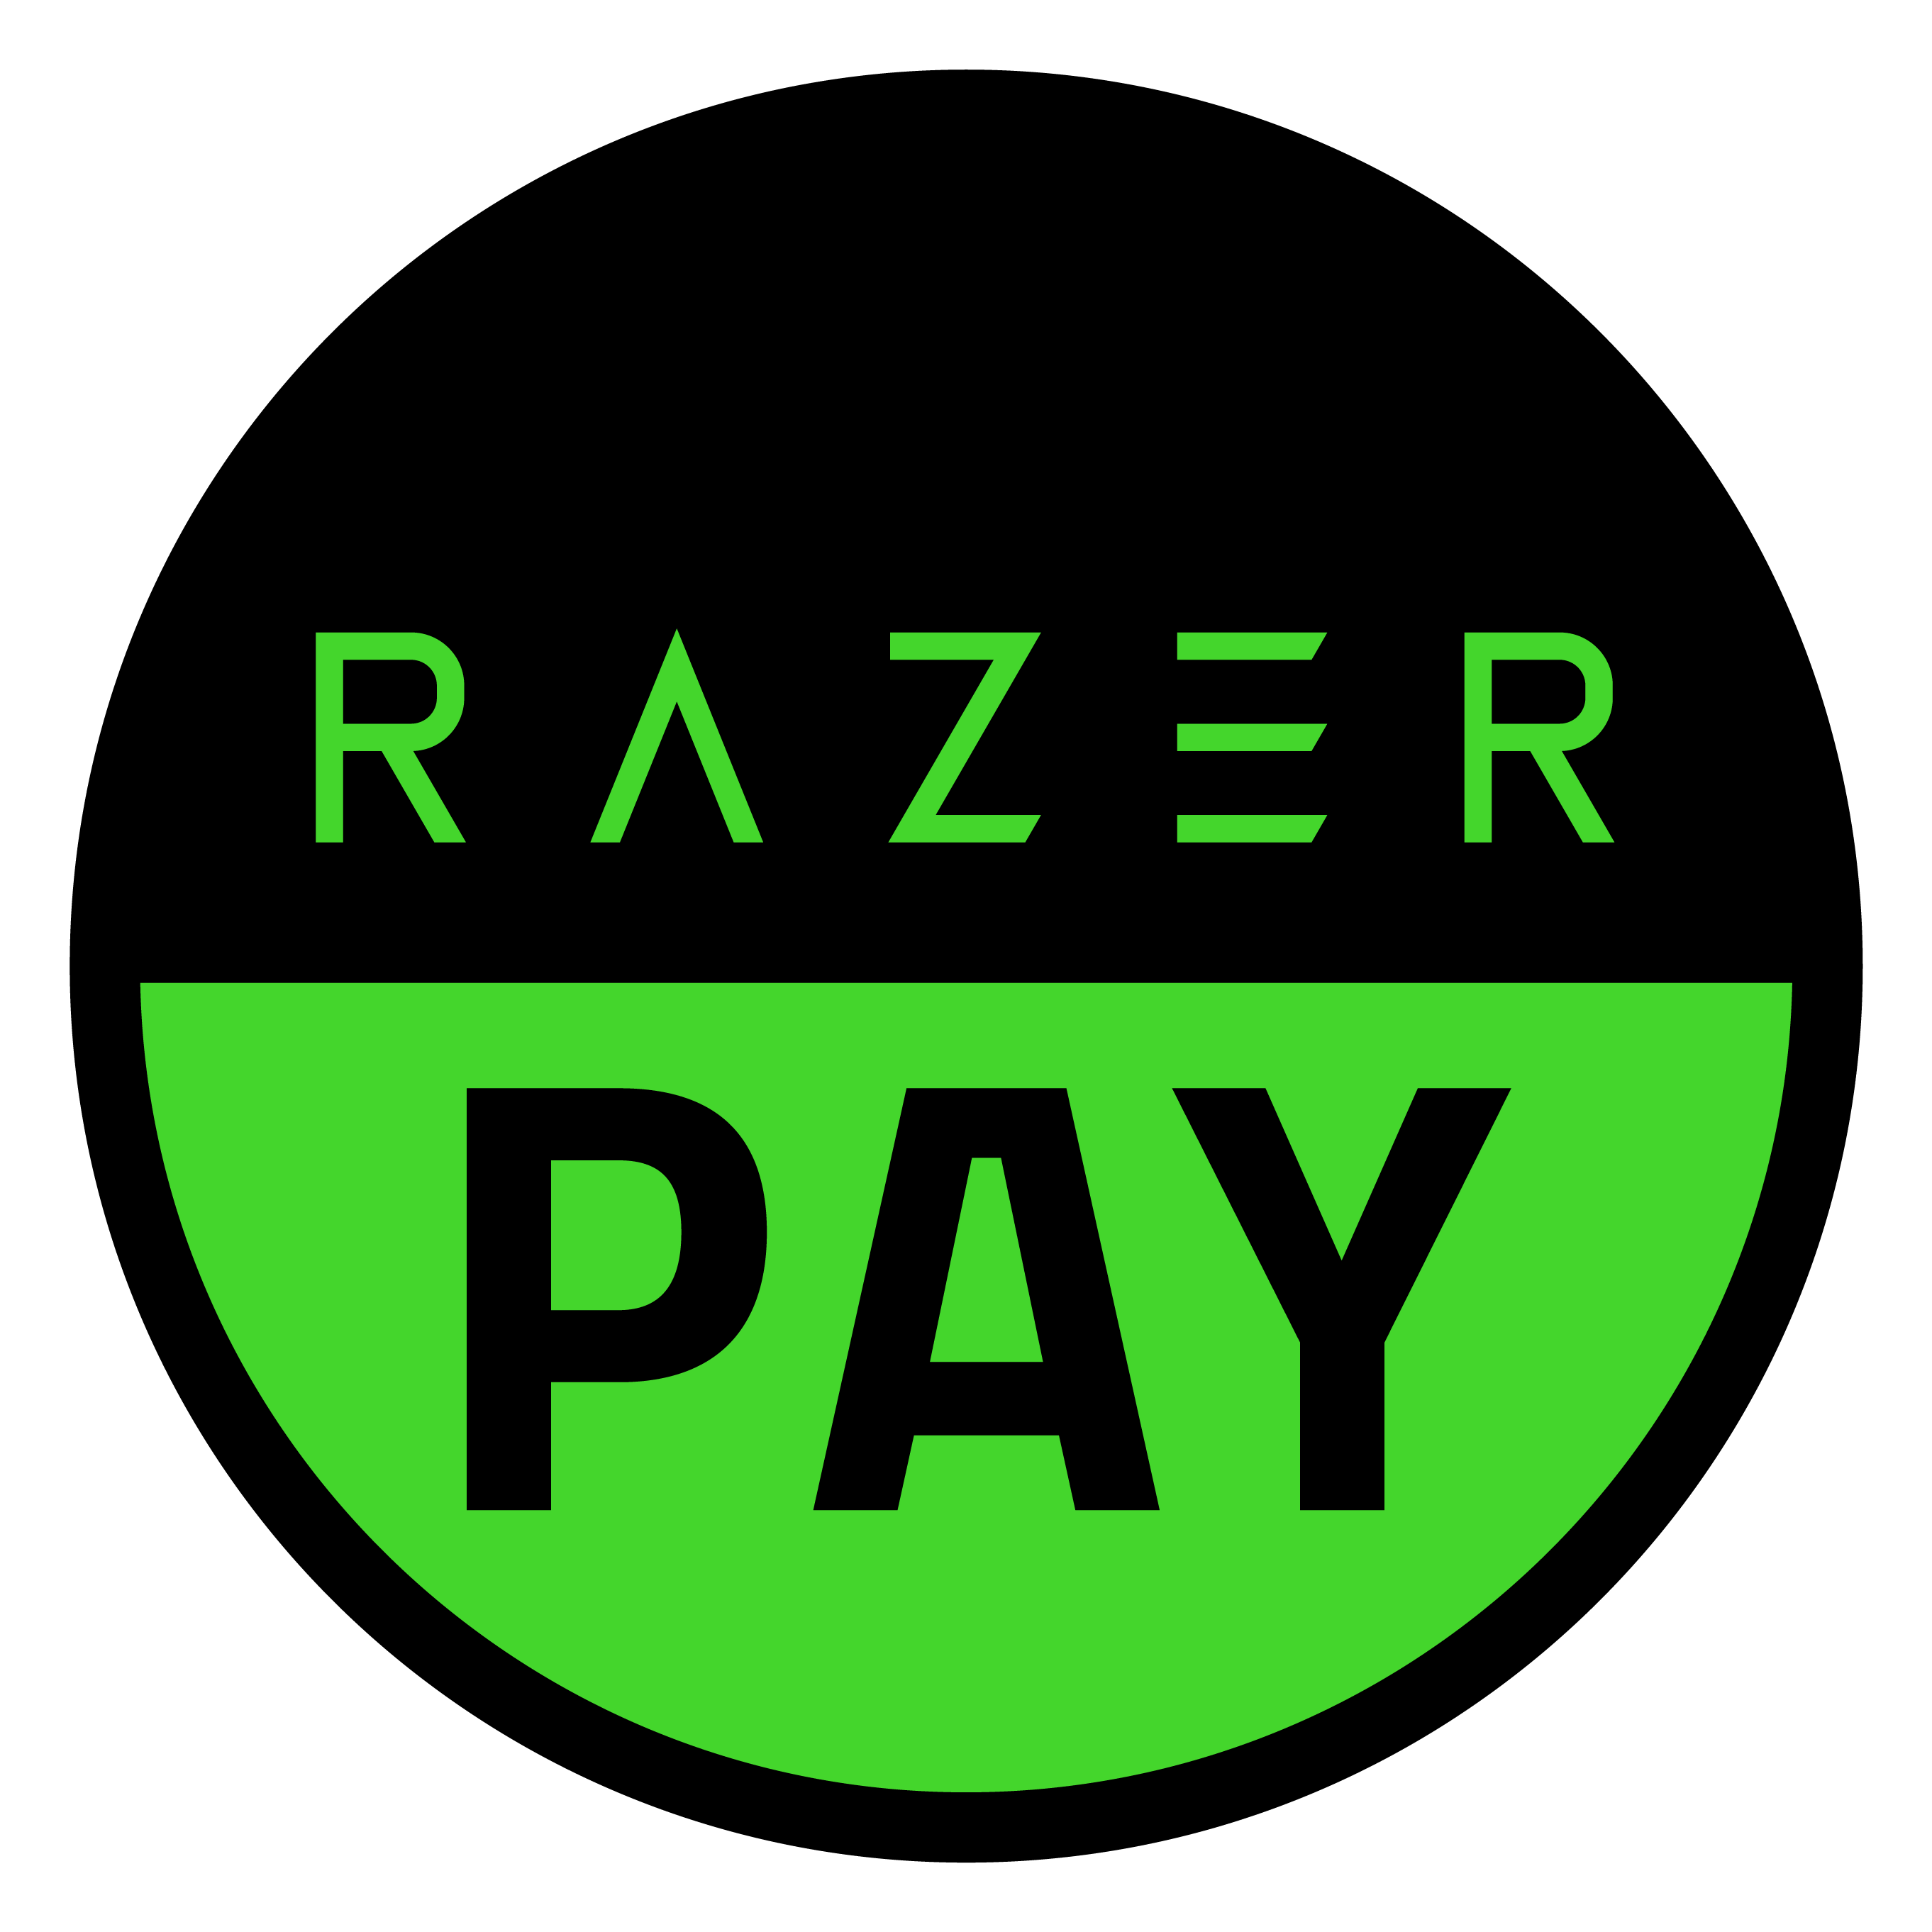 Razer Pay | Official Razer Support